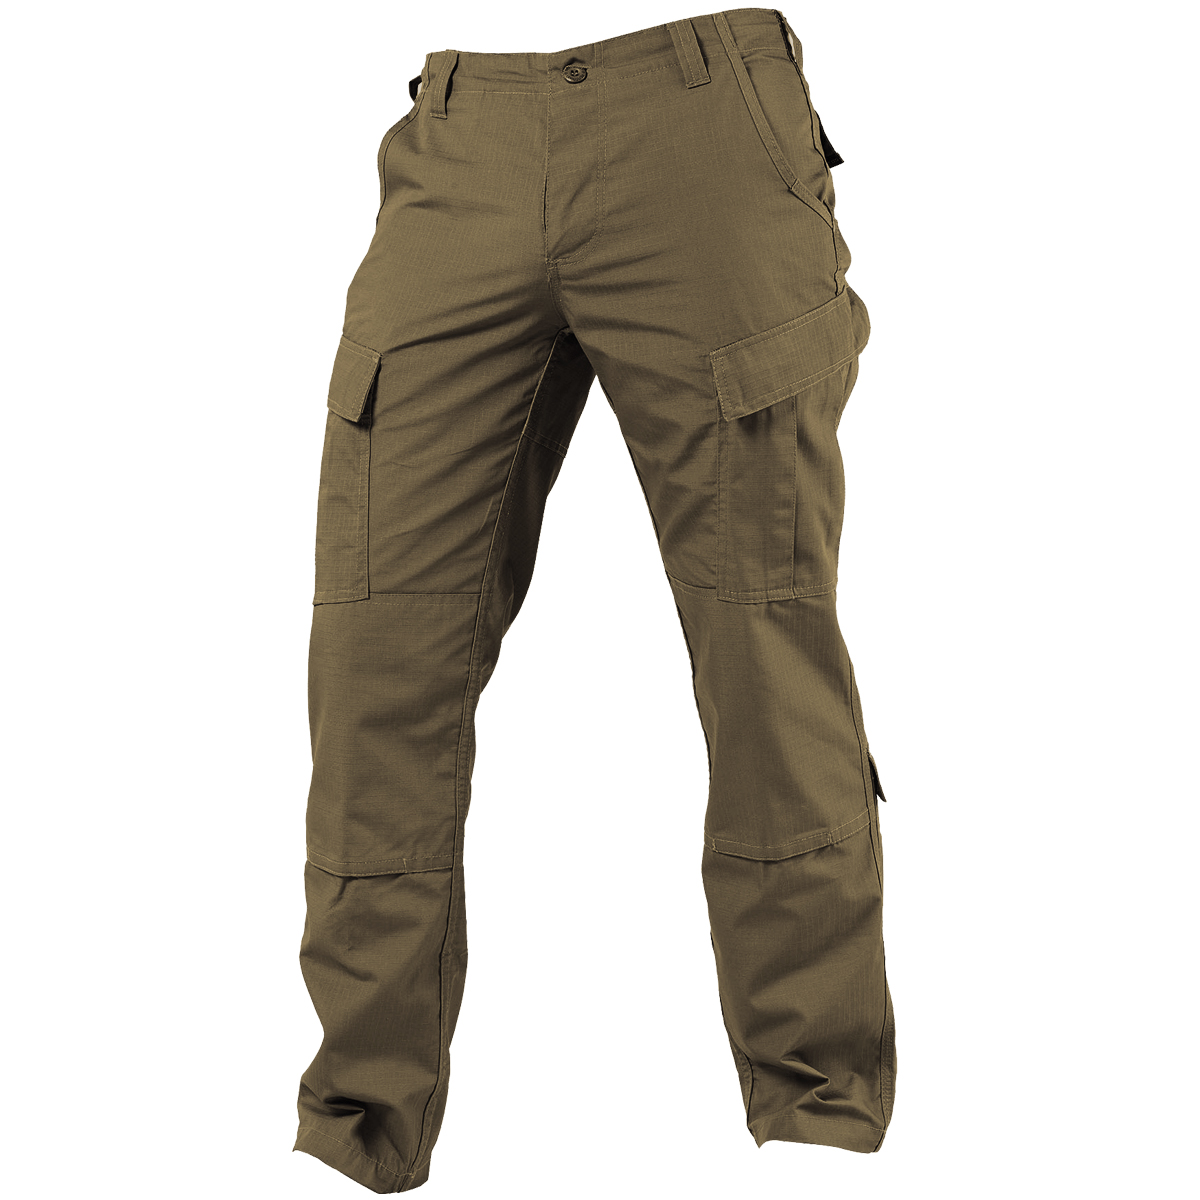 Find great deals on eBay for trousers pants. Shop with confidence.